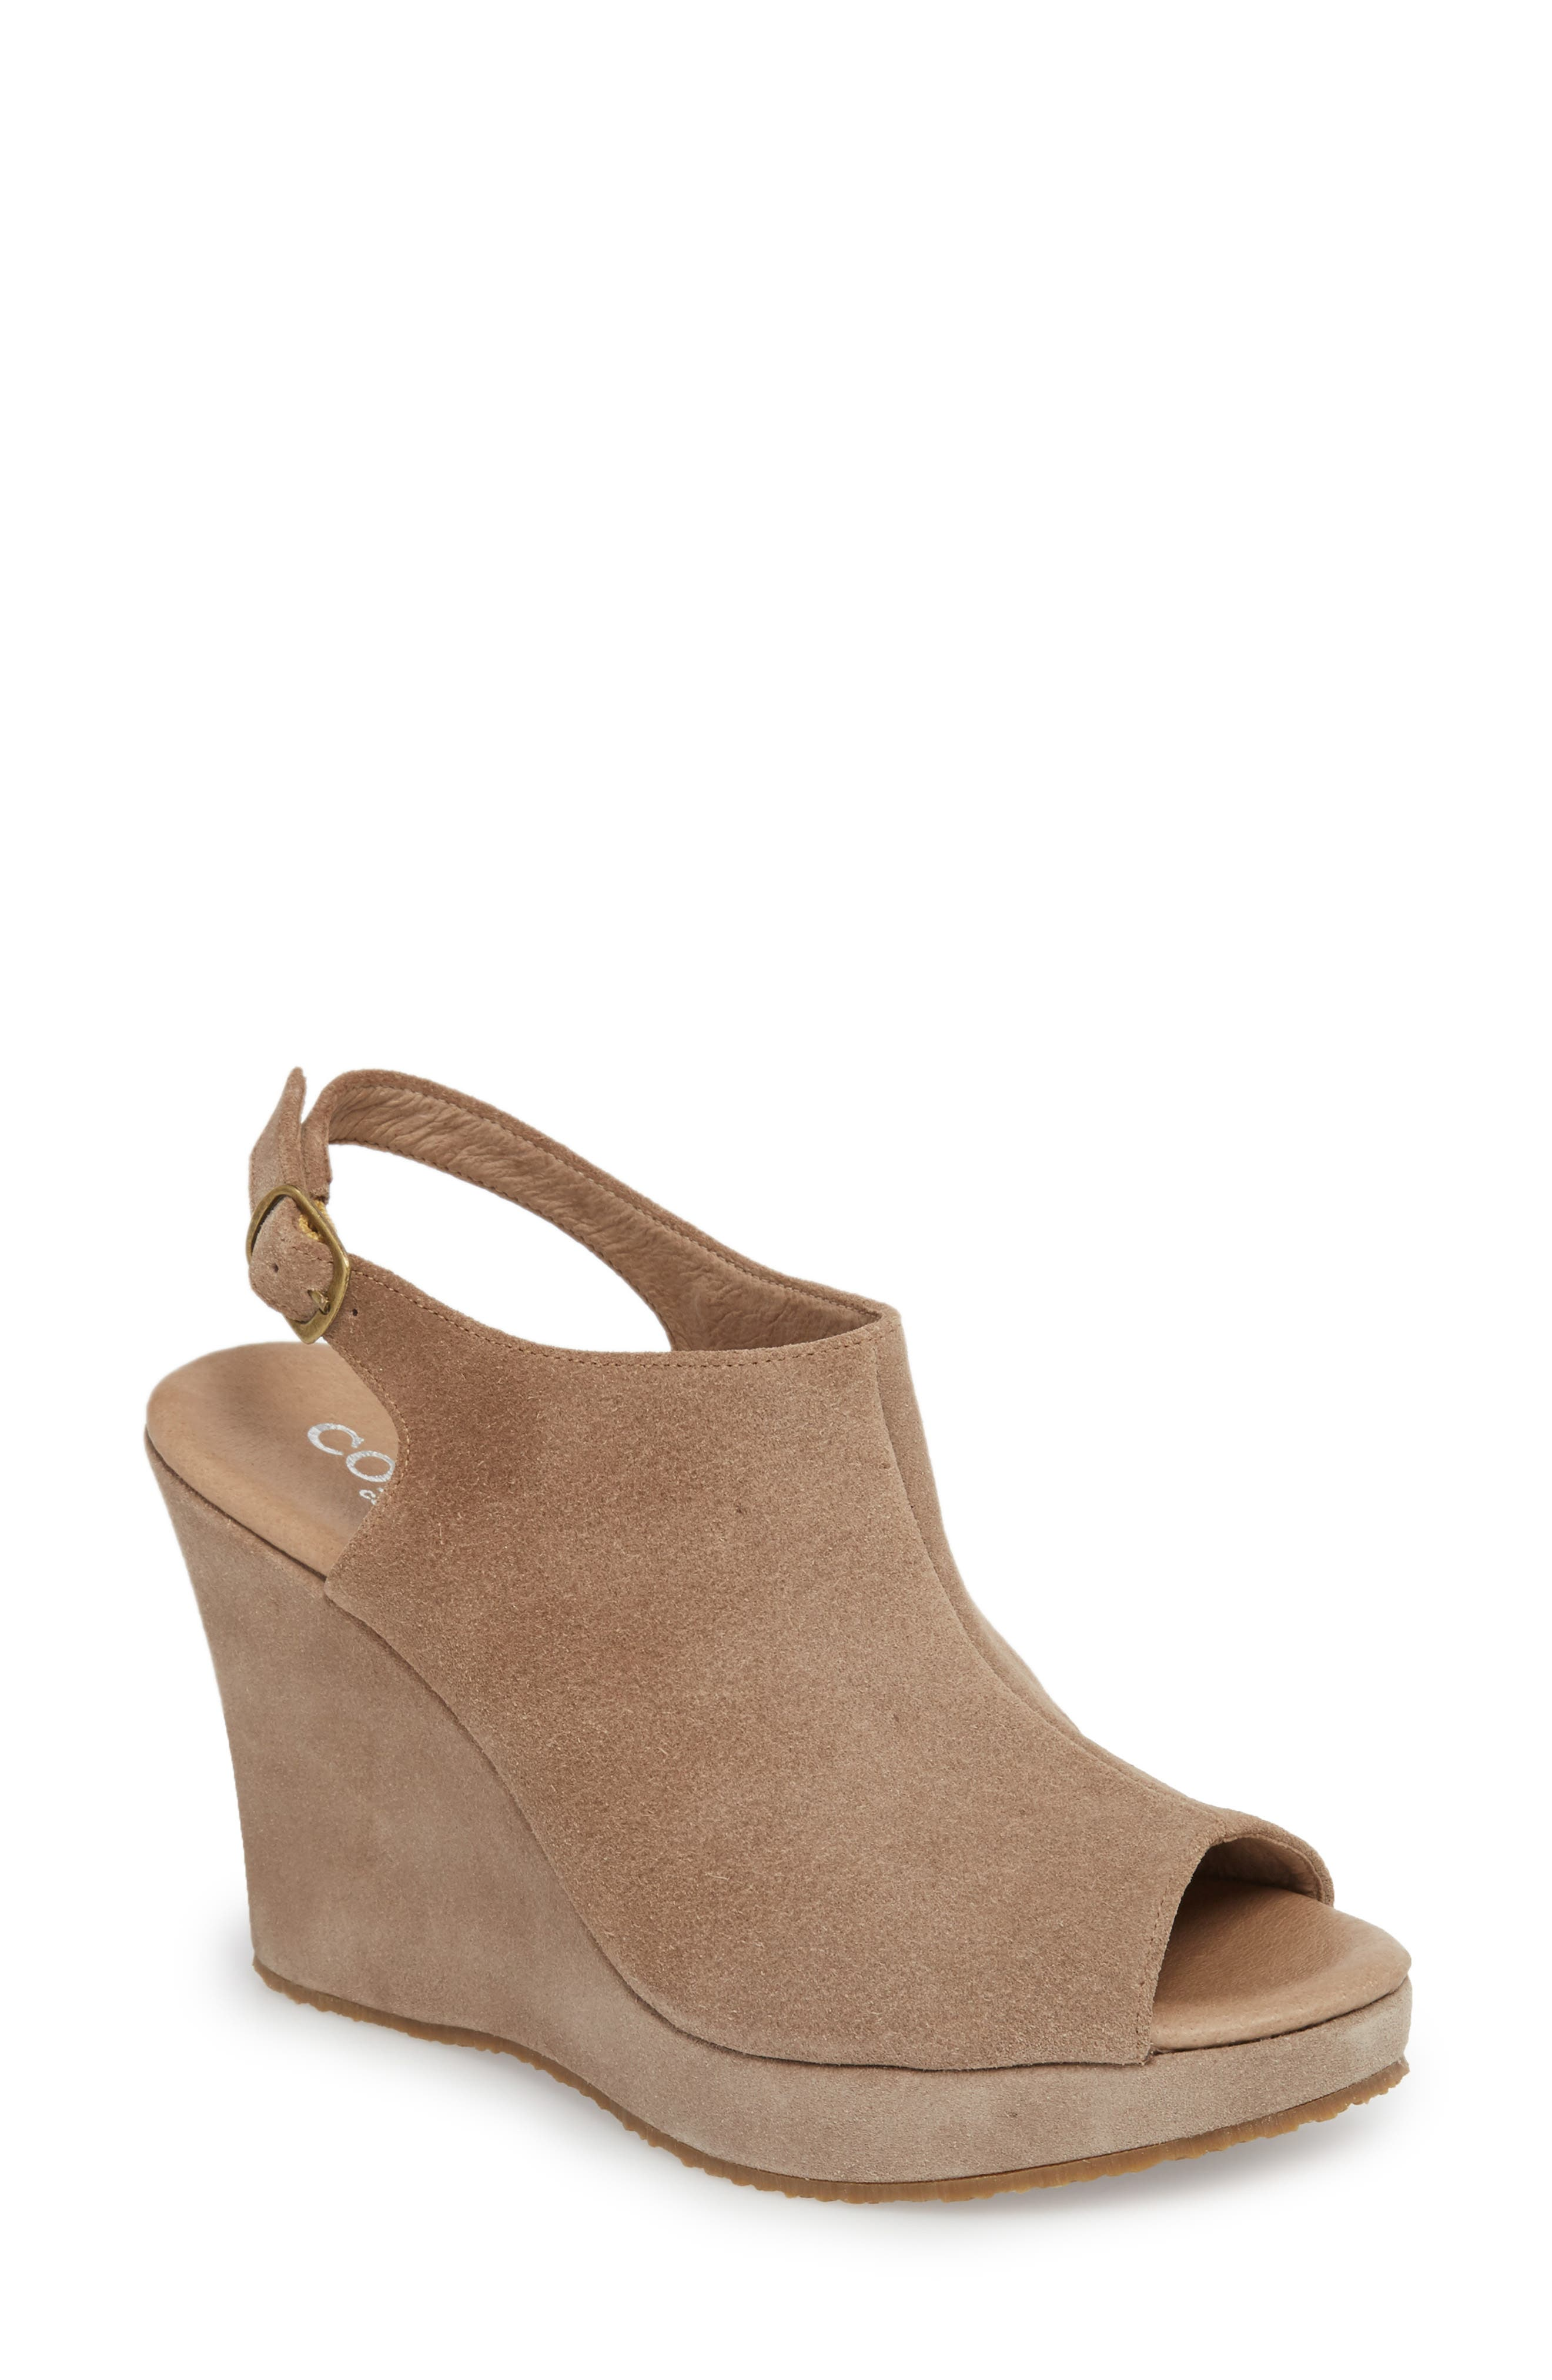 'Wellesley' Sandal,                             Main thumbnail 1, color,                             Taupe Suede